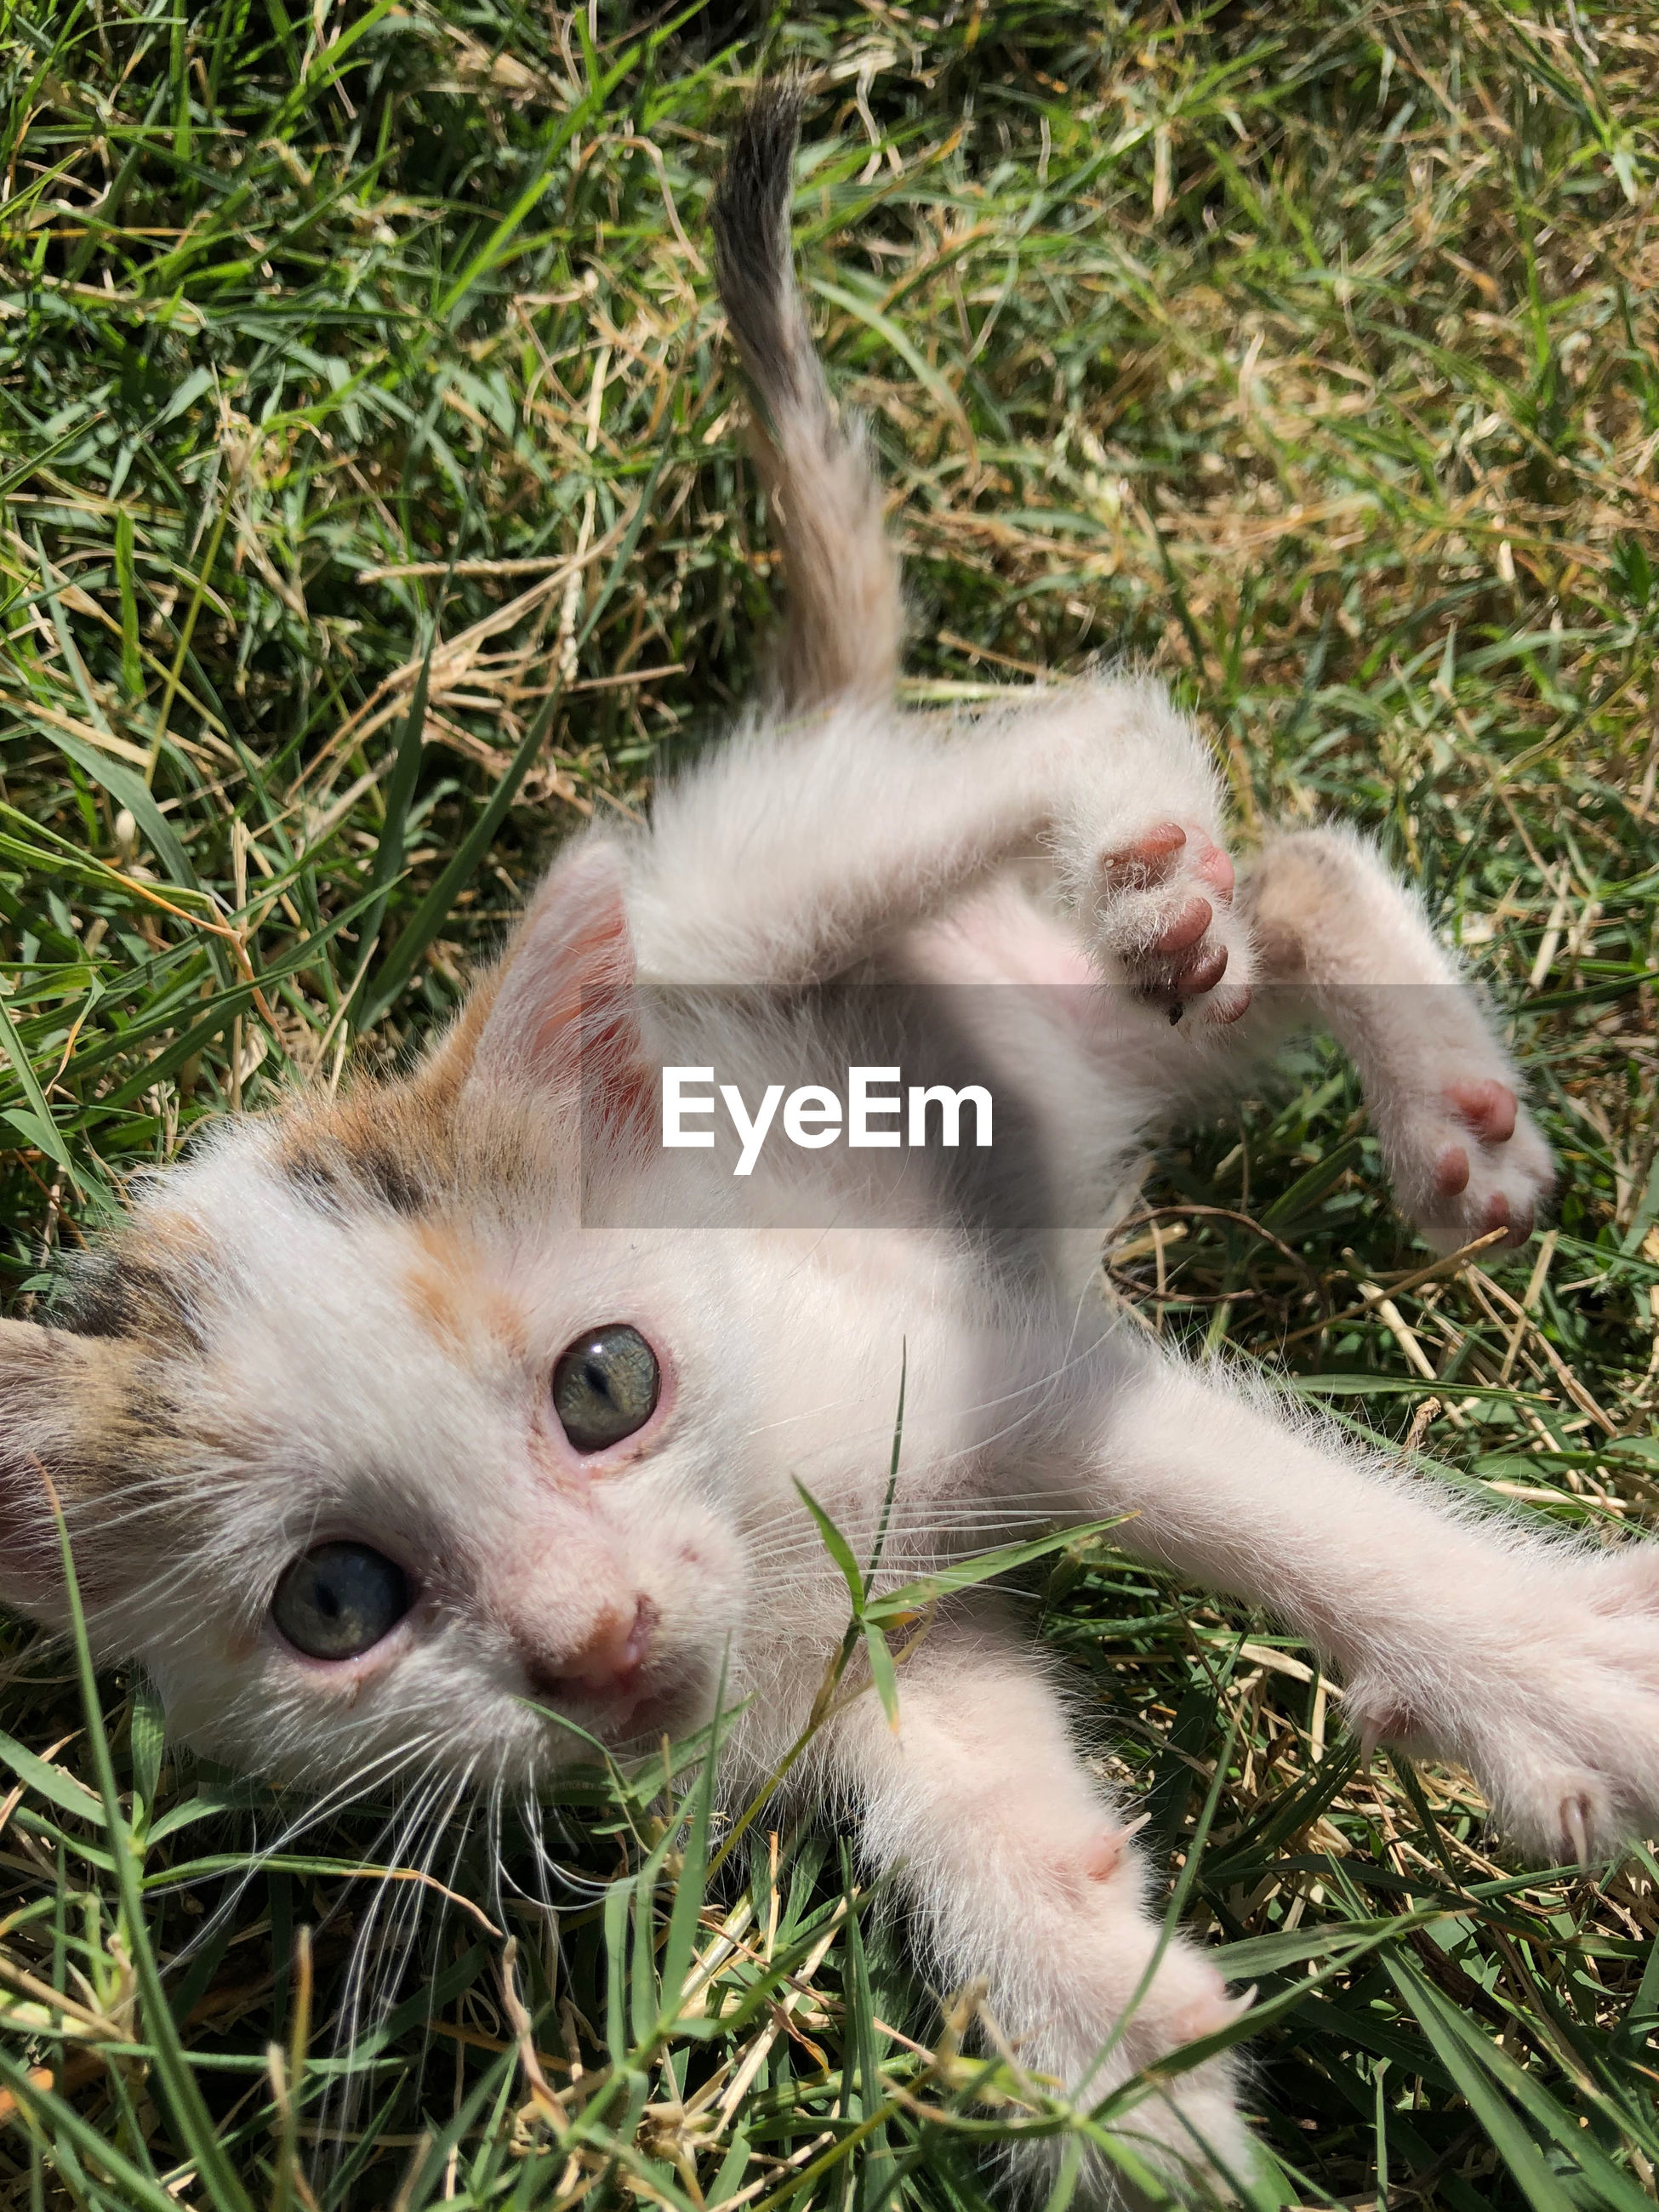 High angle view portrait of kitten on grass